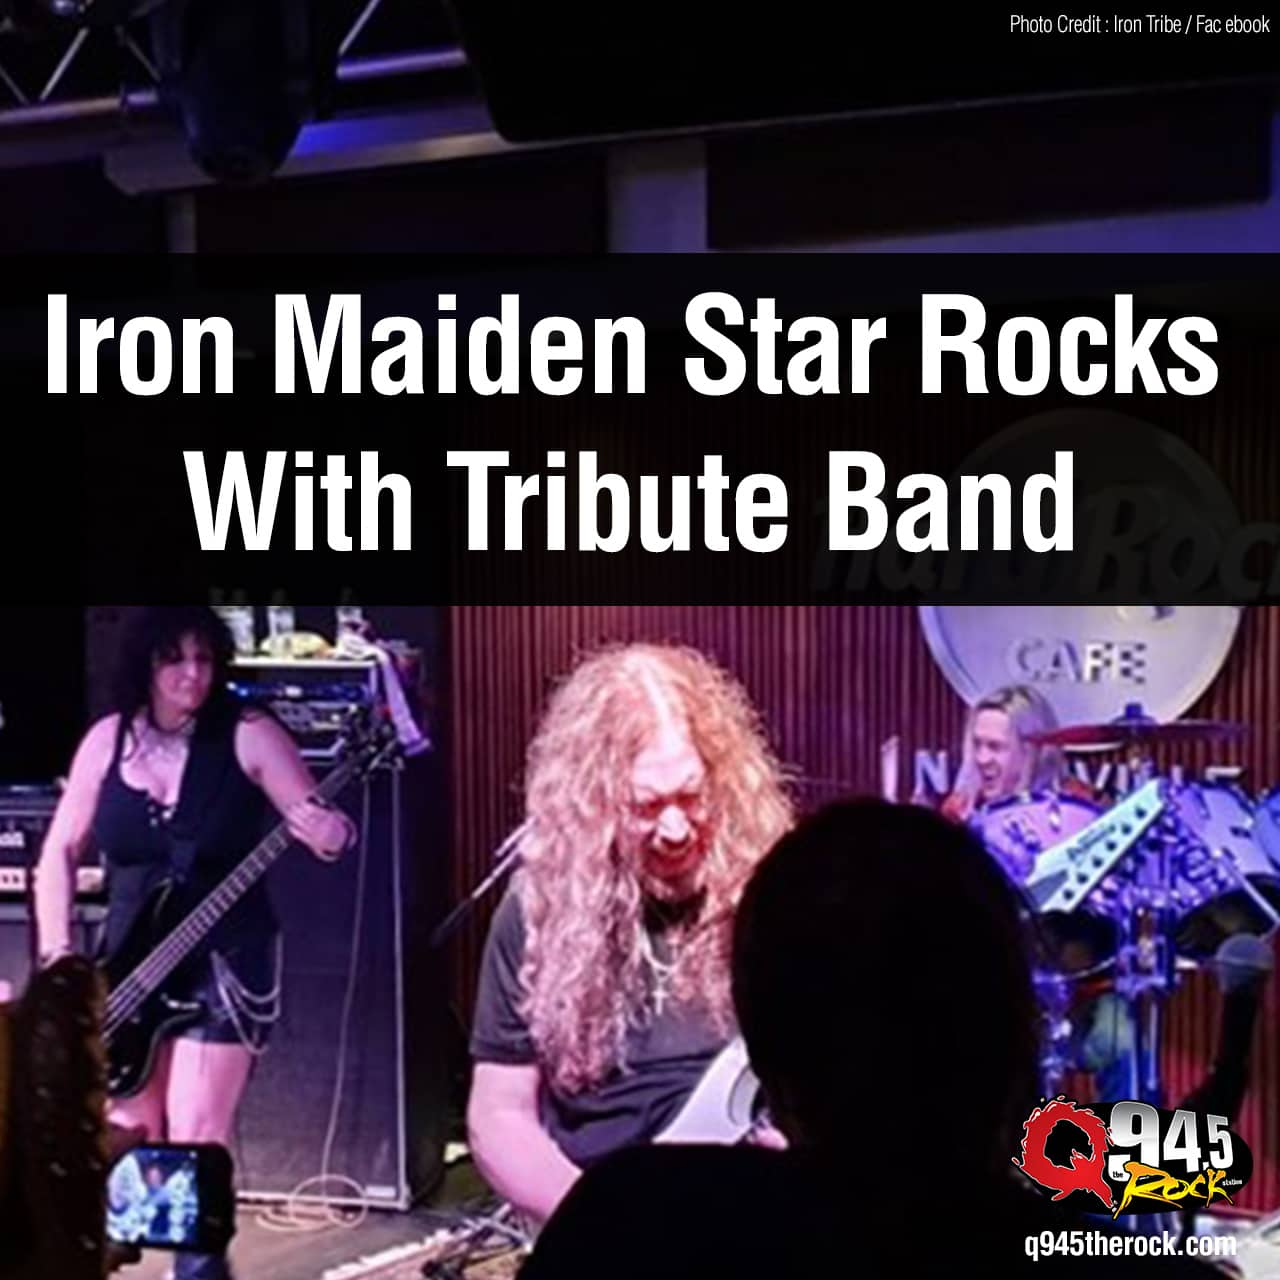 Iron Maiden Star Rocks With Tribute Band